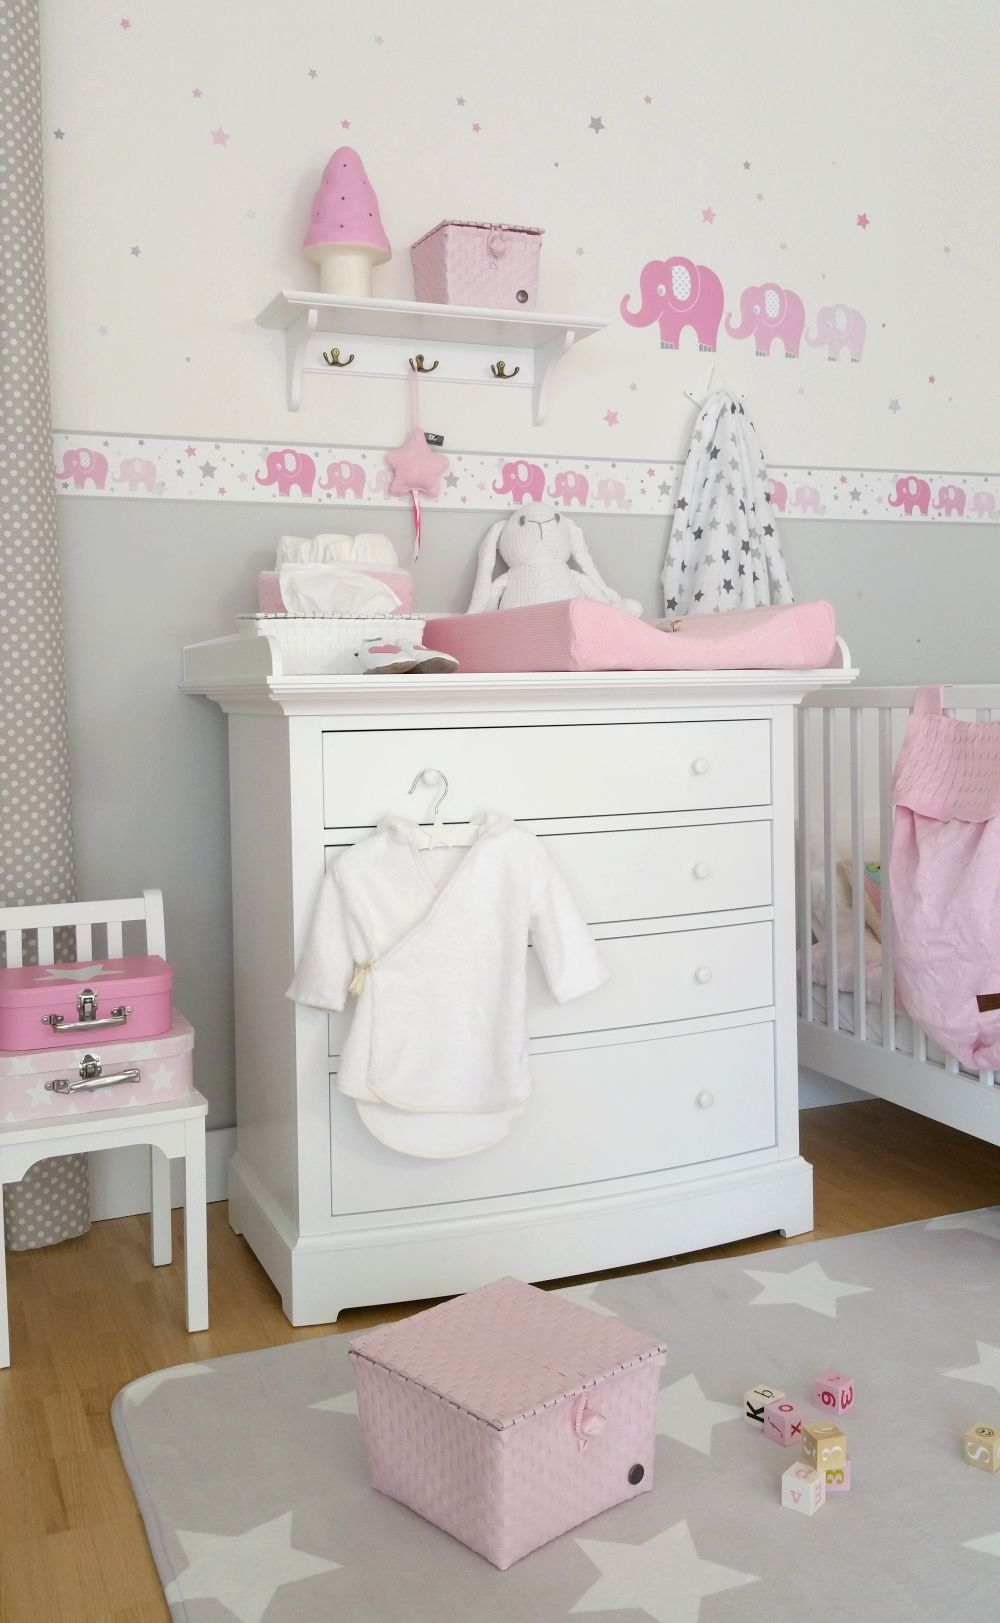 kinderzimmer bord re elefanten rosa grau selbstklebend. Black Bedroom Furniture Sets. Home Design Ideas